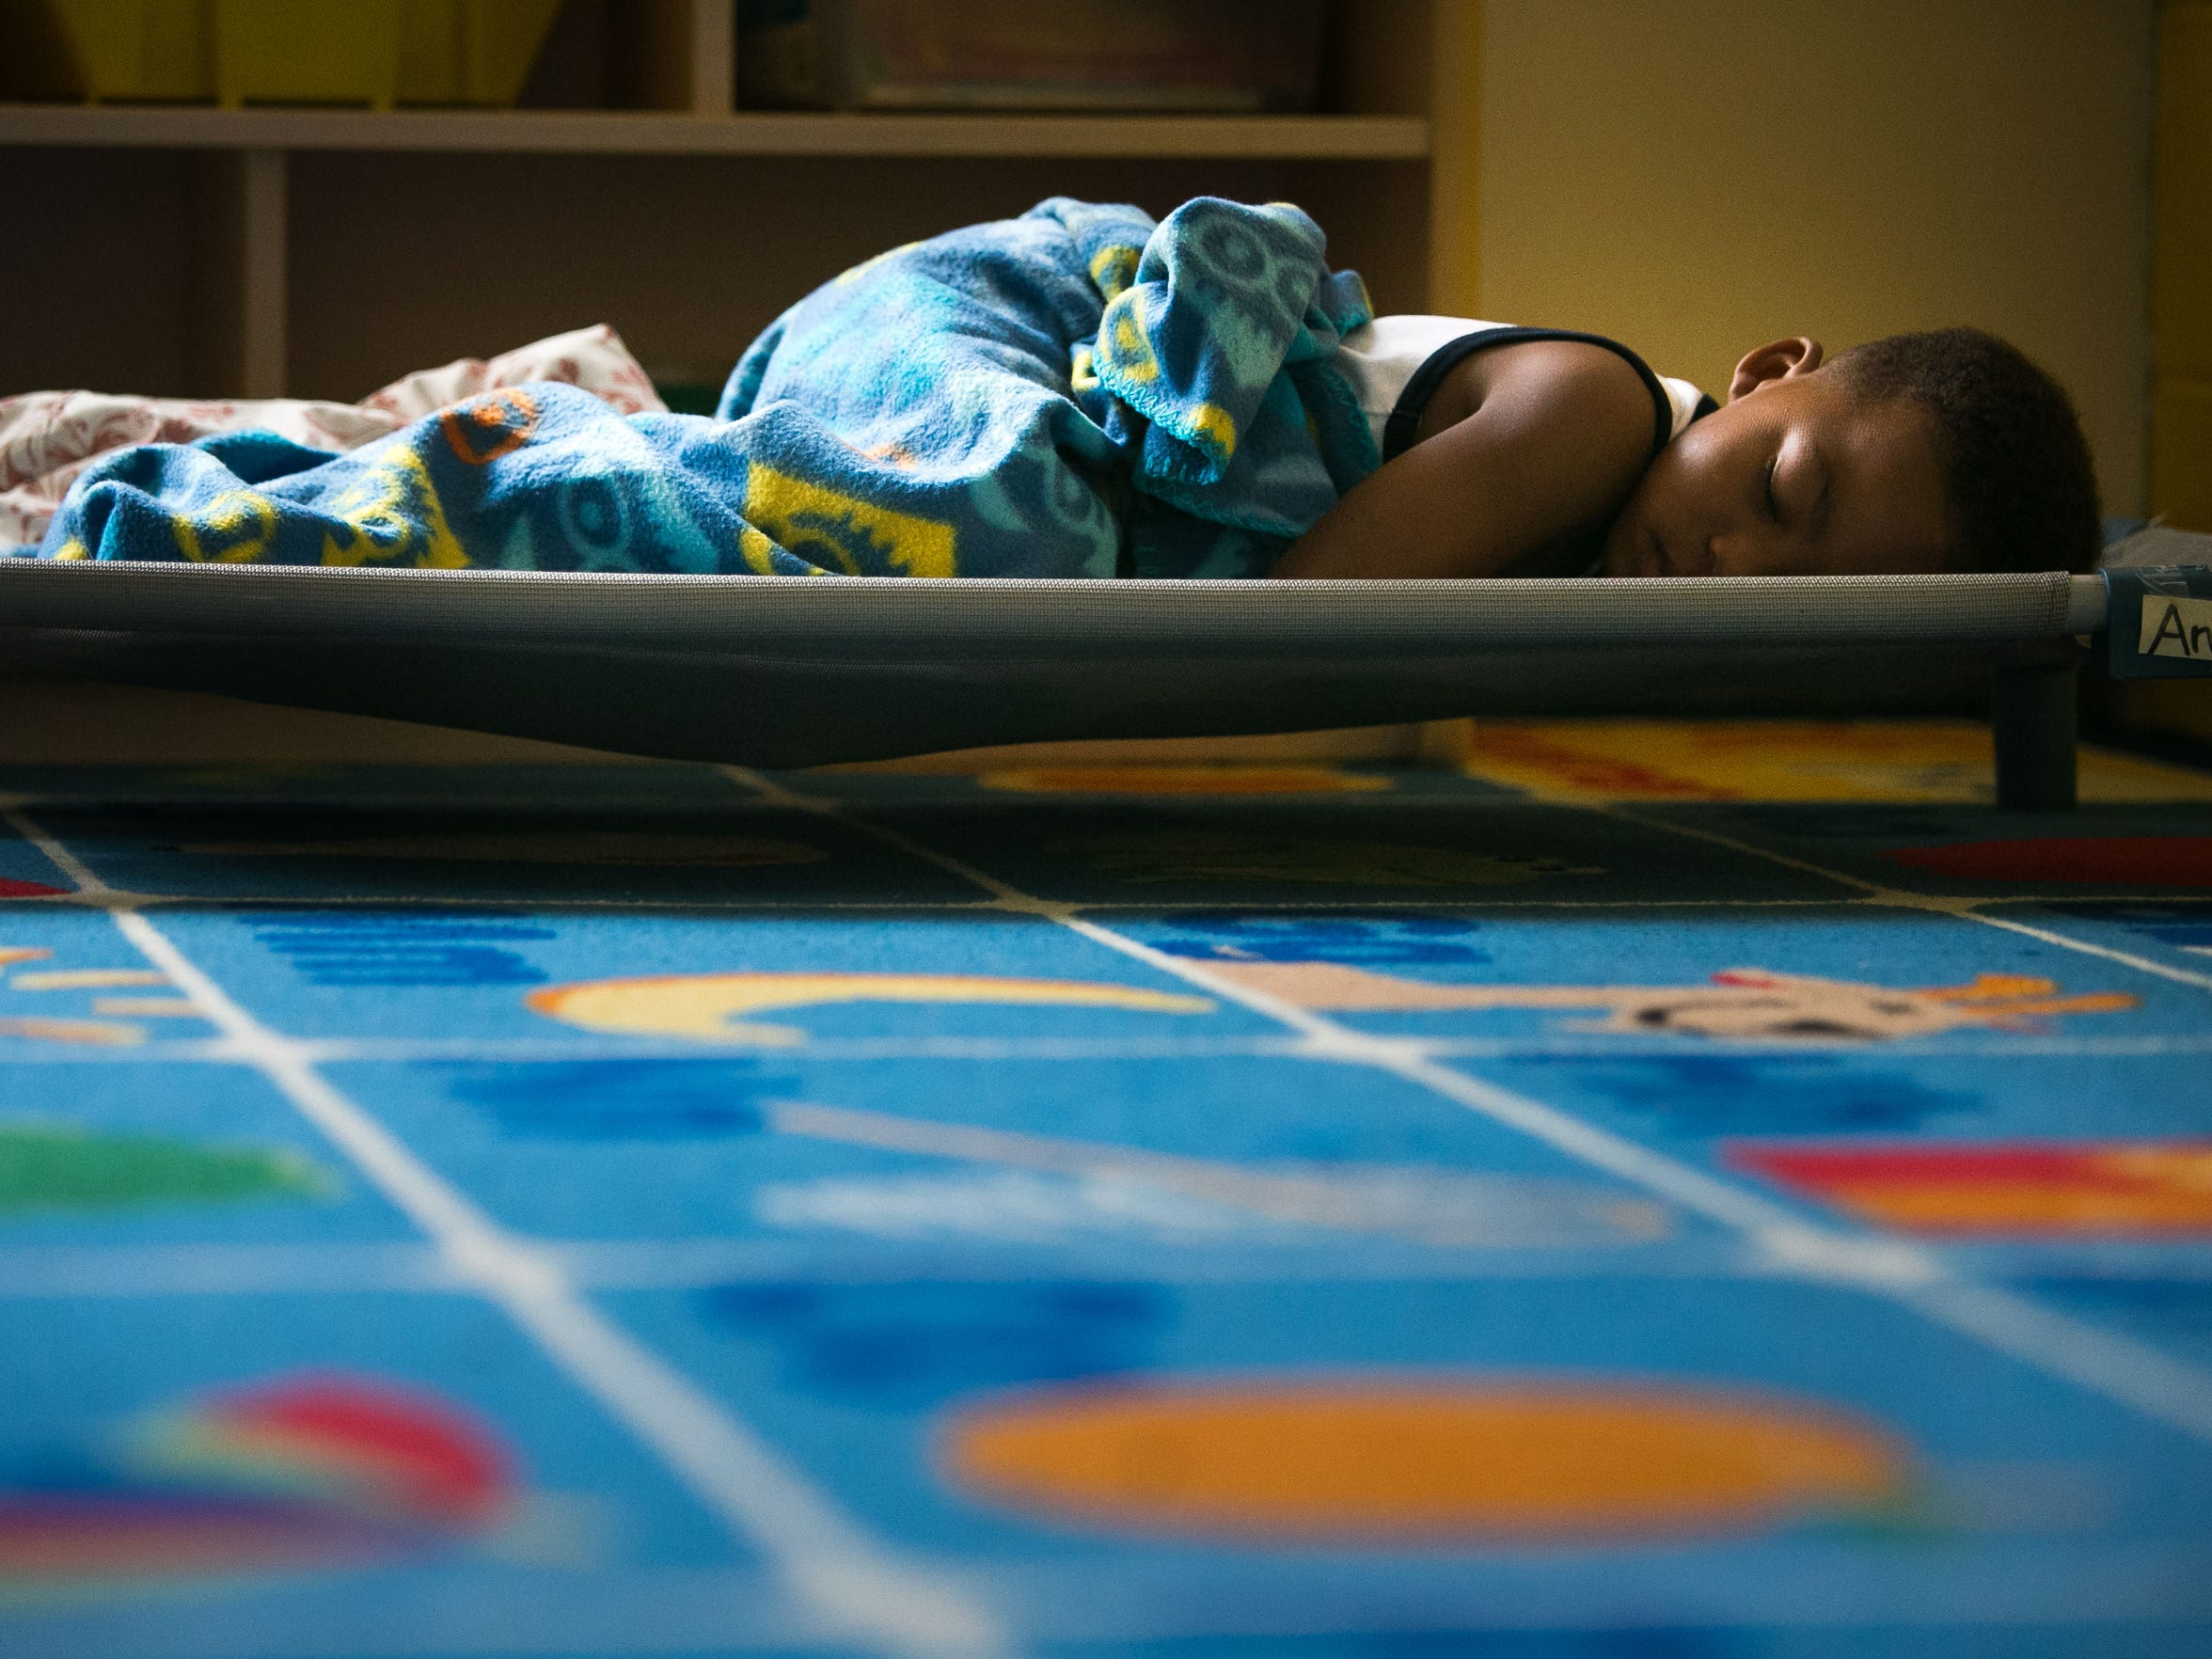 Anmad Helm-Brown, 4, sleeps during nap time in the Early Learning Center at Kingswood Community Center in Wilmington which has been struggling to do such things as find money to not only run its programs, but also find money to pay bills and replace their leaking roof located just outside the hallway of his classroom.